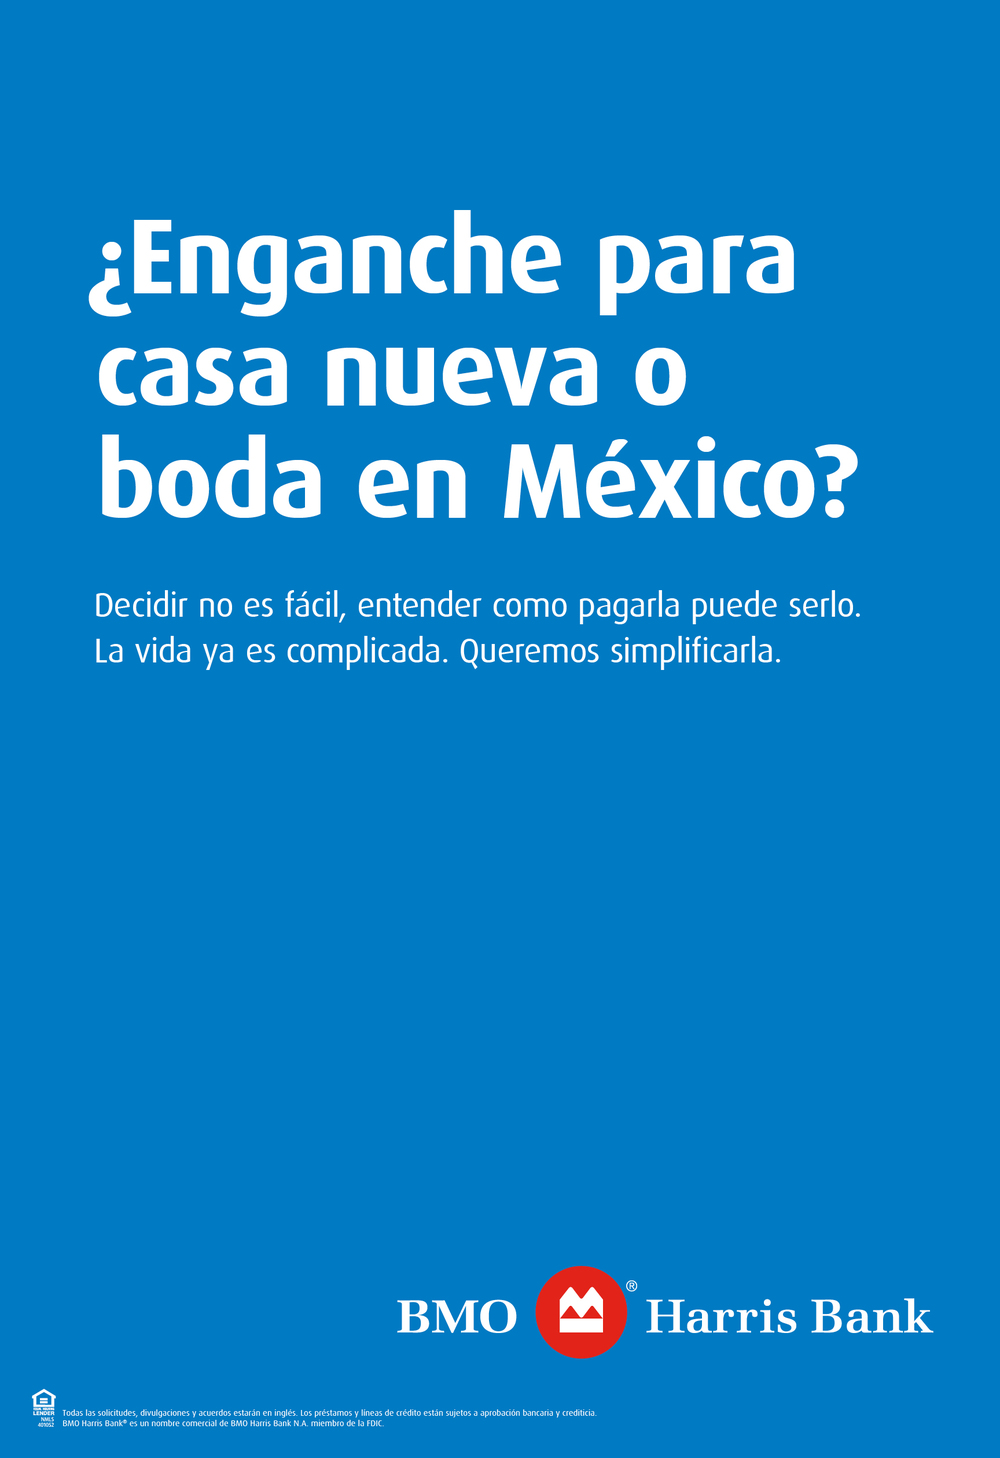 Down payment for a house or wedding in Mexico?